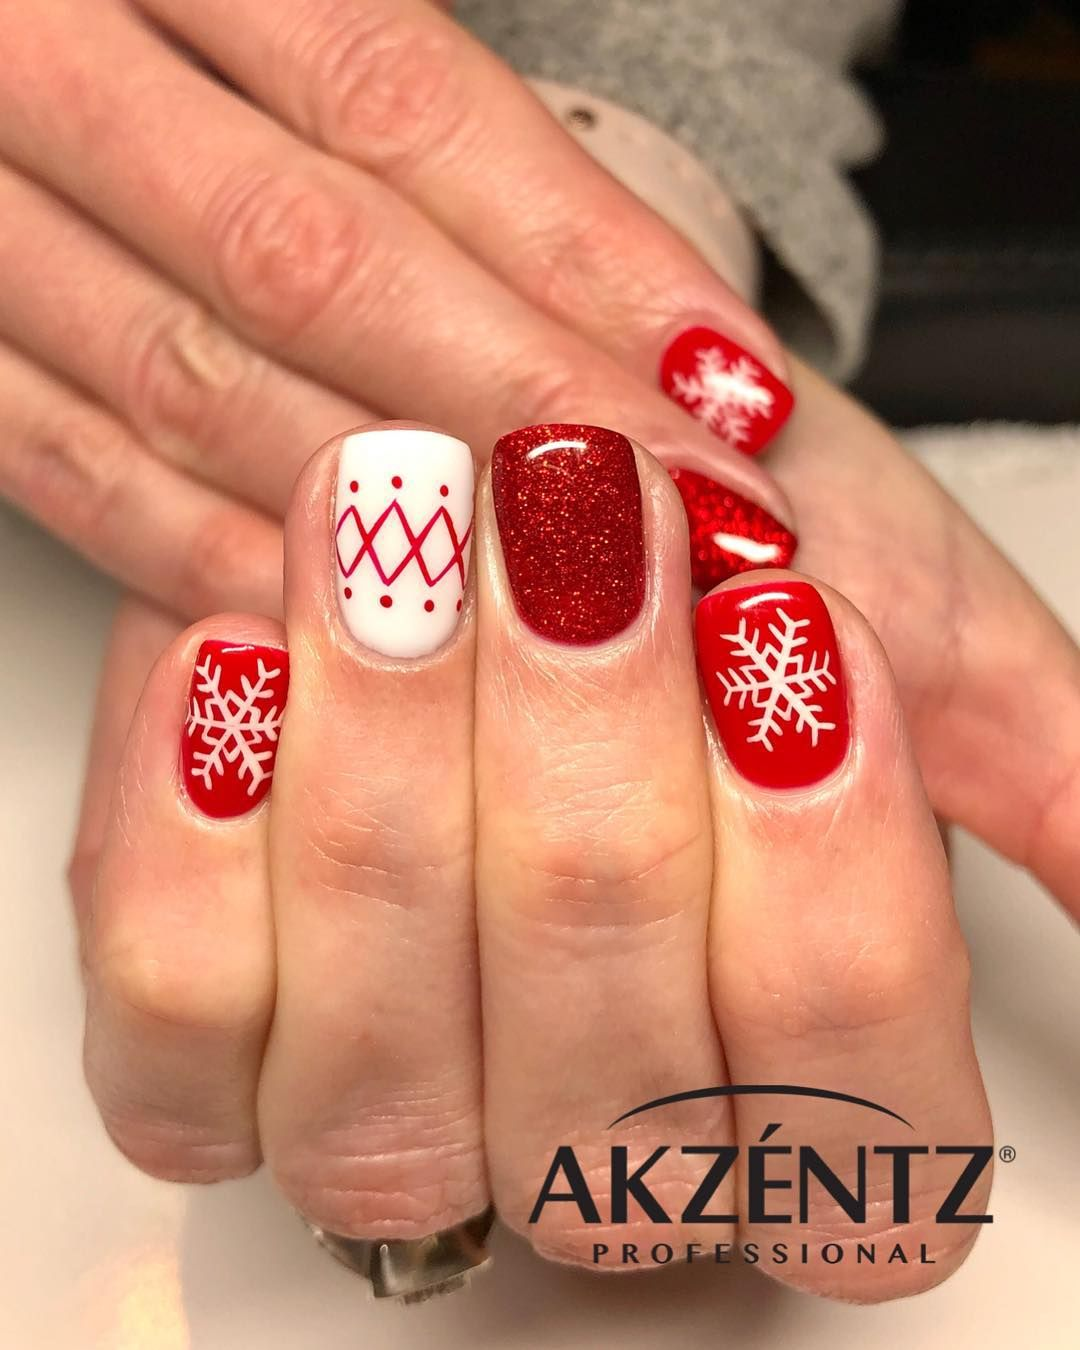 Amazing Red Snowflake Nails Design For Christmas Christmas Nail Designs Snowflake Nail Design Red Christmas Nails